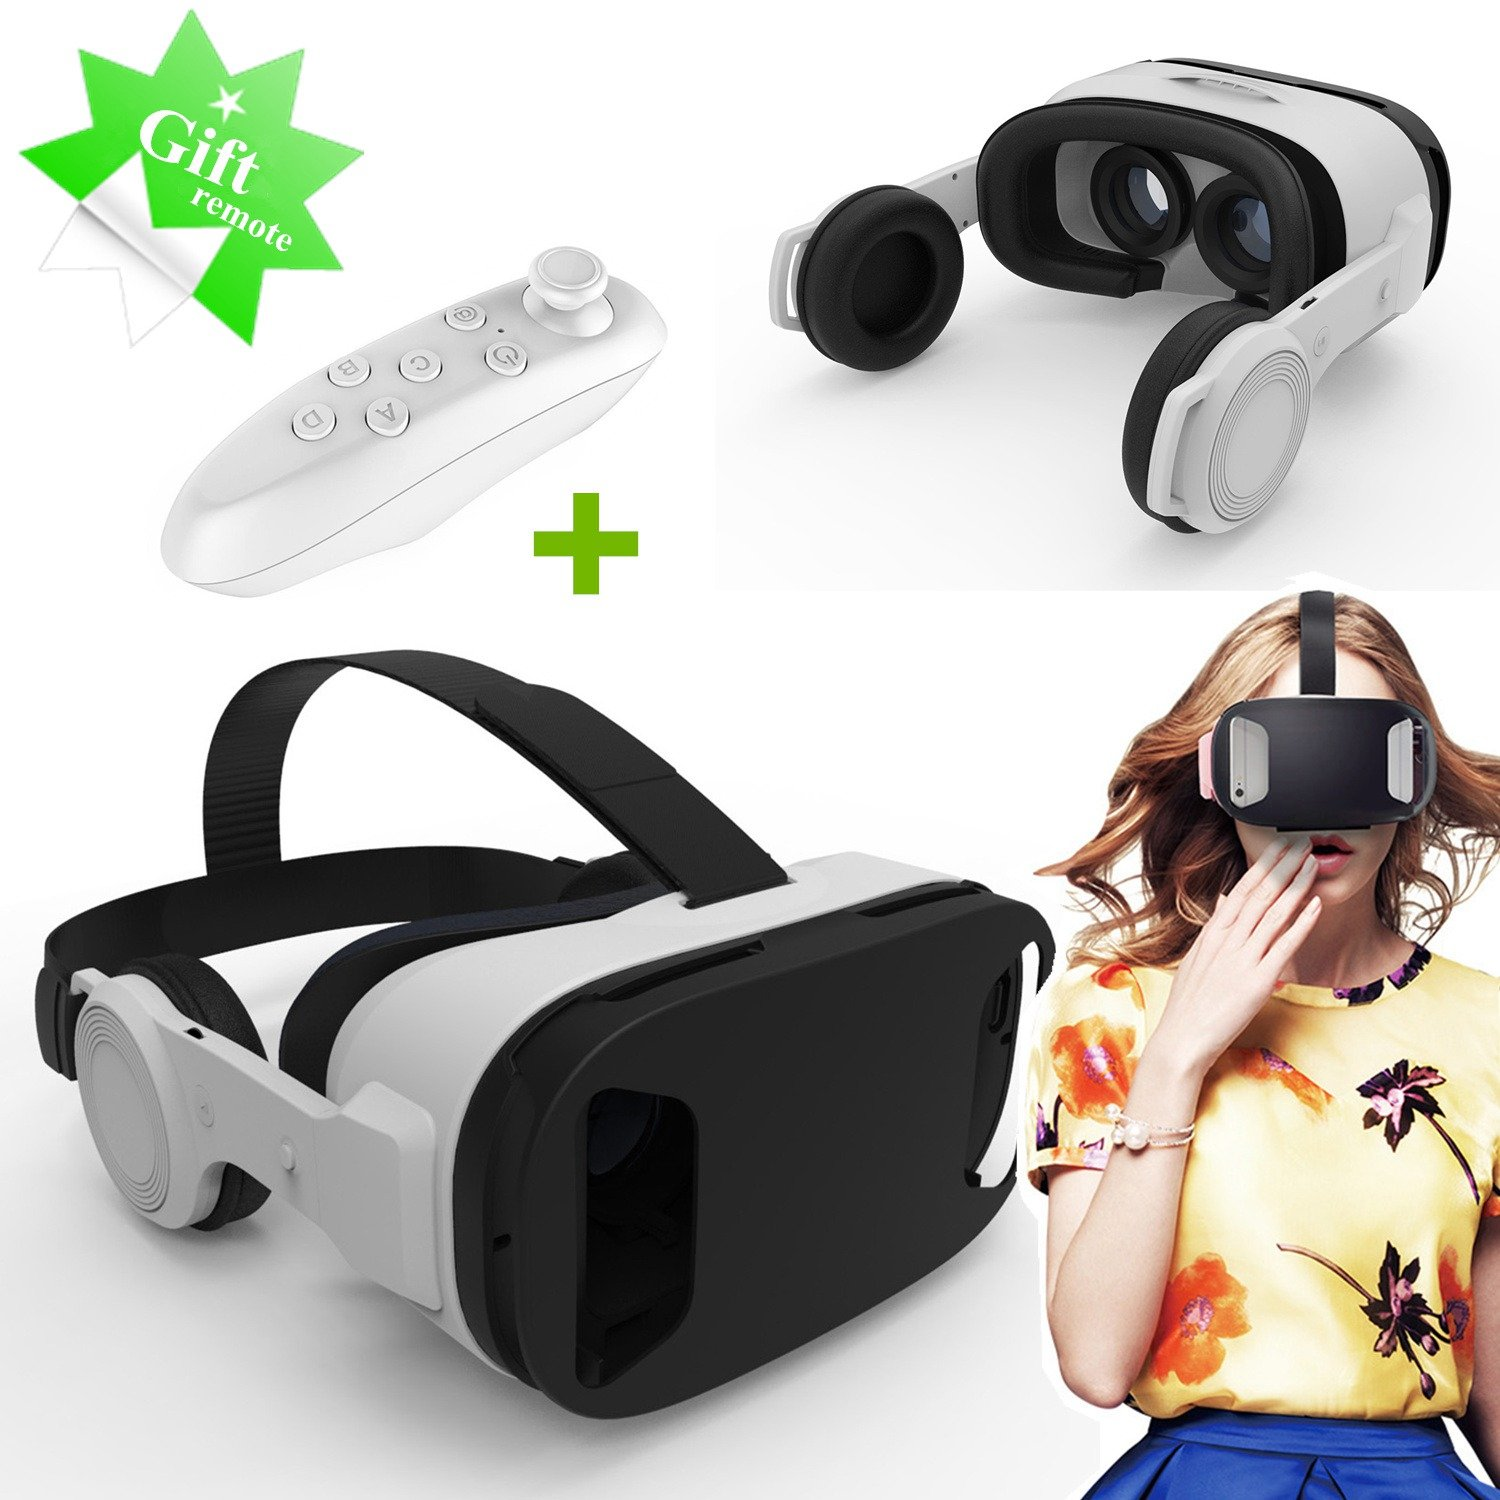 """3D VR Headset/Glasses Tsanglight Virtual Reality Headset with 3D Headphones & Gift Remote for 4.5-5.5"""" IOS & Android, VR Headset for Samsung Galaxy S7 Edge/S6/A5/A3 2016, iPhone 7 Plus/6/6S Plus etc"""